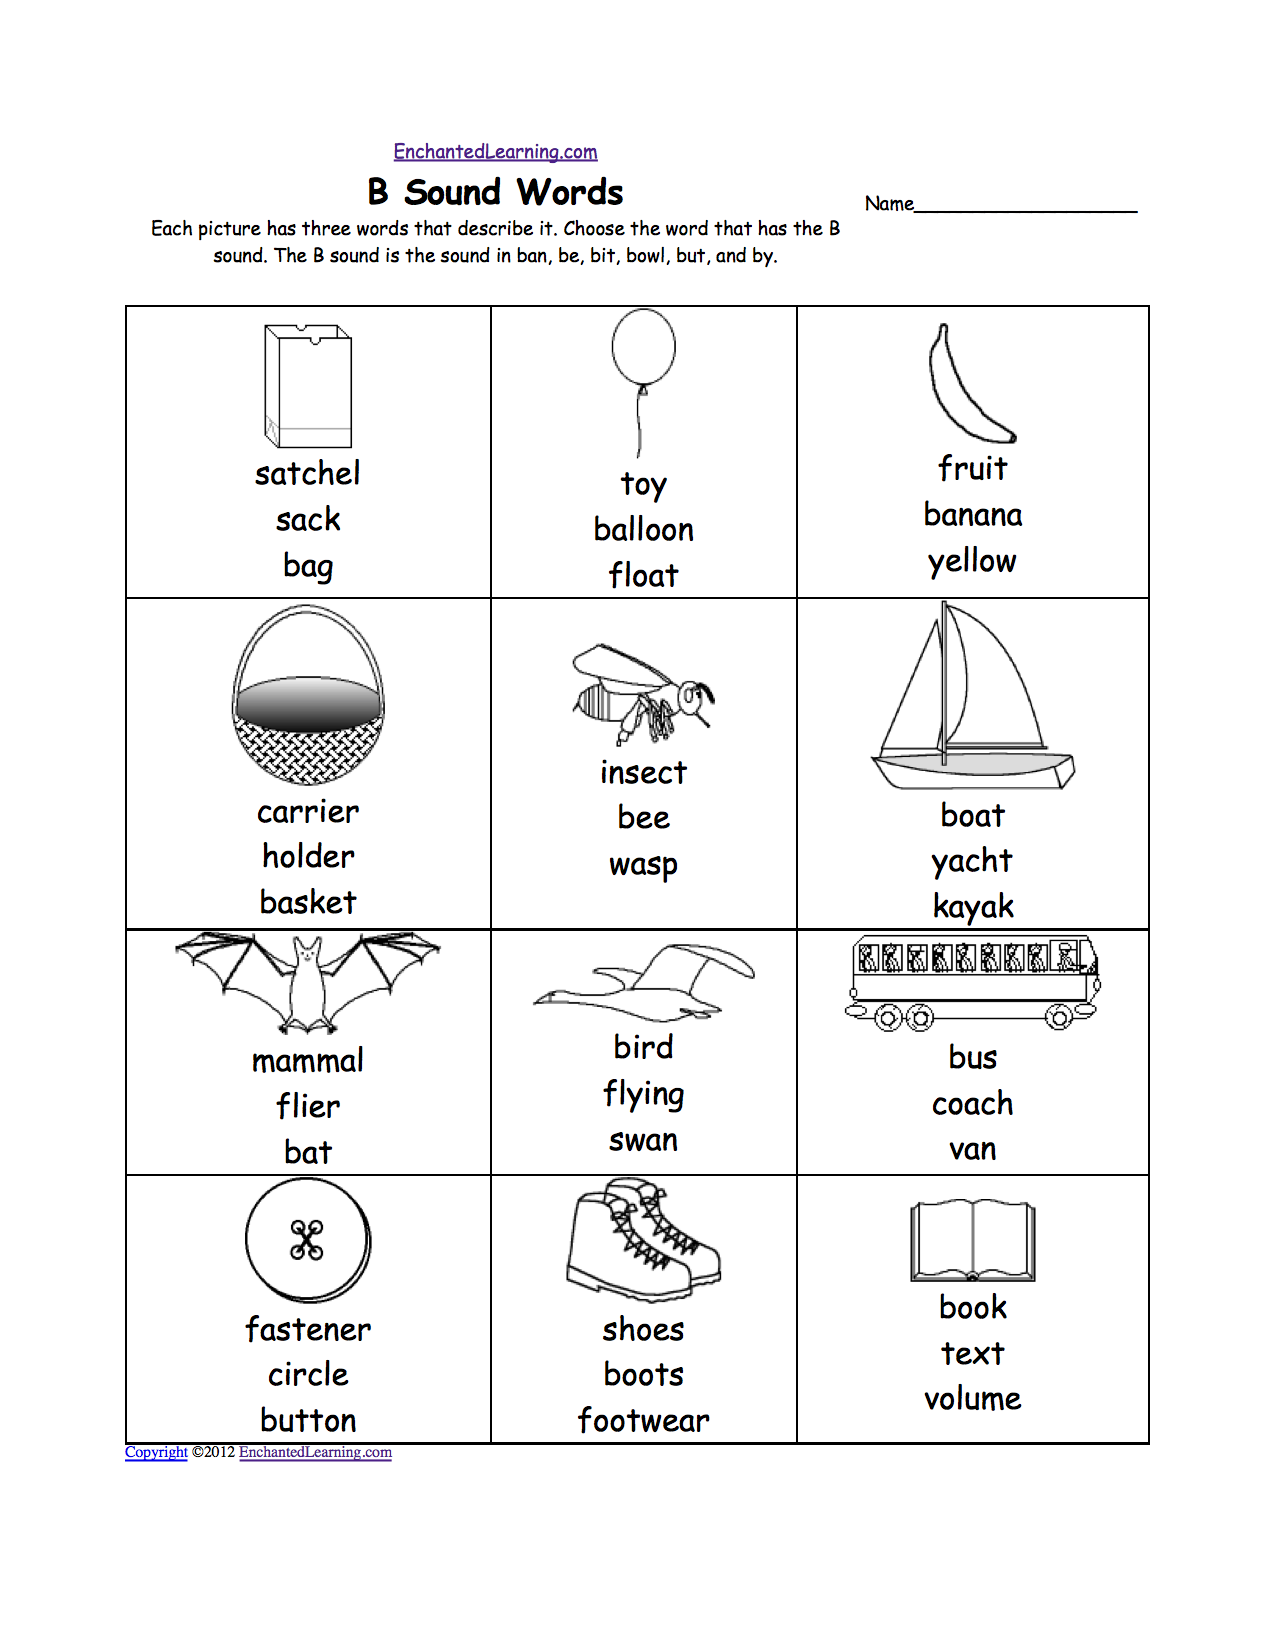 Weirdmailus  Nice Phonics Worksheets Multiple Choice Worksheets To Print  With Heavenly Quotbquot Sound Phonics Worksheet Multiple Choice Each Picture Has Three Words That Describe It Choose The Word That Has A Quotbquot Sound The Quotbquot Sound Is The Sound  With Delectable Sum Across Worksheets Also Worksheet On Multiplying Polynomials In Addition Worksheet On Adverbs And Contractions First Grade Worksheets As Well As Er Ir Ur Worksheets St Grade Additionally Free Printable Worksheets For Rd Grade Math From Enchantedlearningcom With Weirdmailus  Heavenly Phonics Worksheets Multiple Choice Worksheets To Print  With Delectable Quotbquot Sound Phonics Worksheet Multiple Choice Each Picture Has Three Words That Describe It Choose The Word That Has A Quotbquot Sound The Quotbquot Sound Is The Sound  And Nice Sum Across Worksheets Also Worksheet On Multiplying Polynomials In Addition Worksheet On Adverbs From Enchantedlearningcom